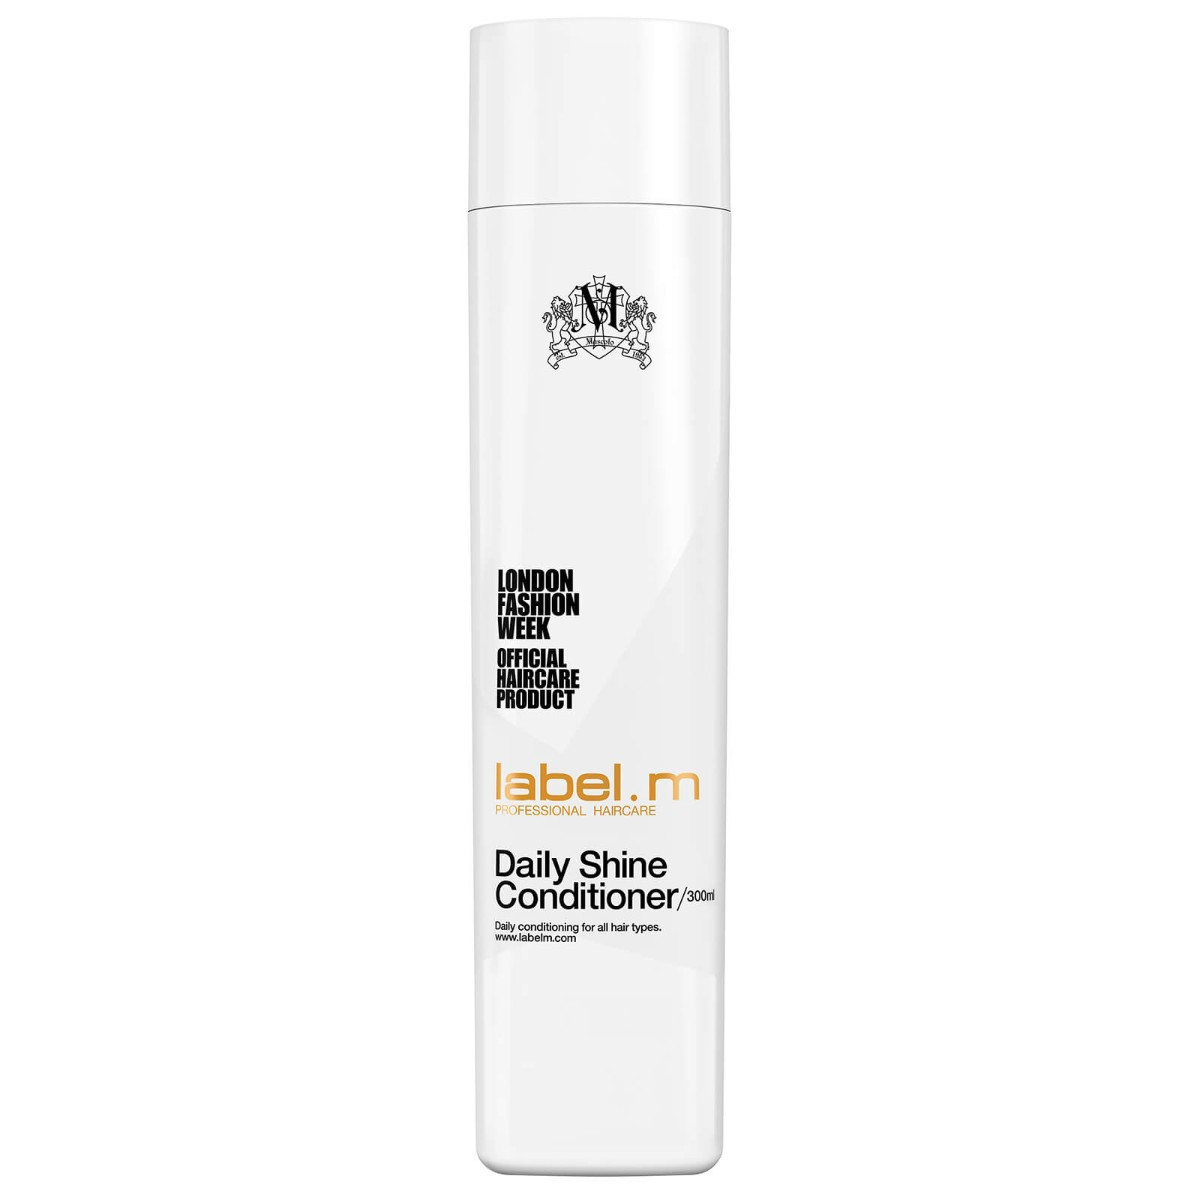 Label.m Daily Shine kondicionieris 300ml